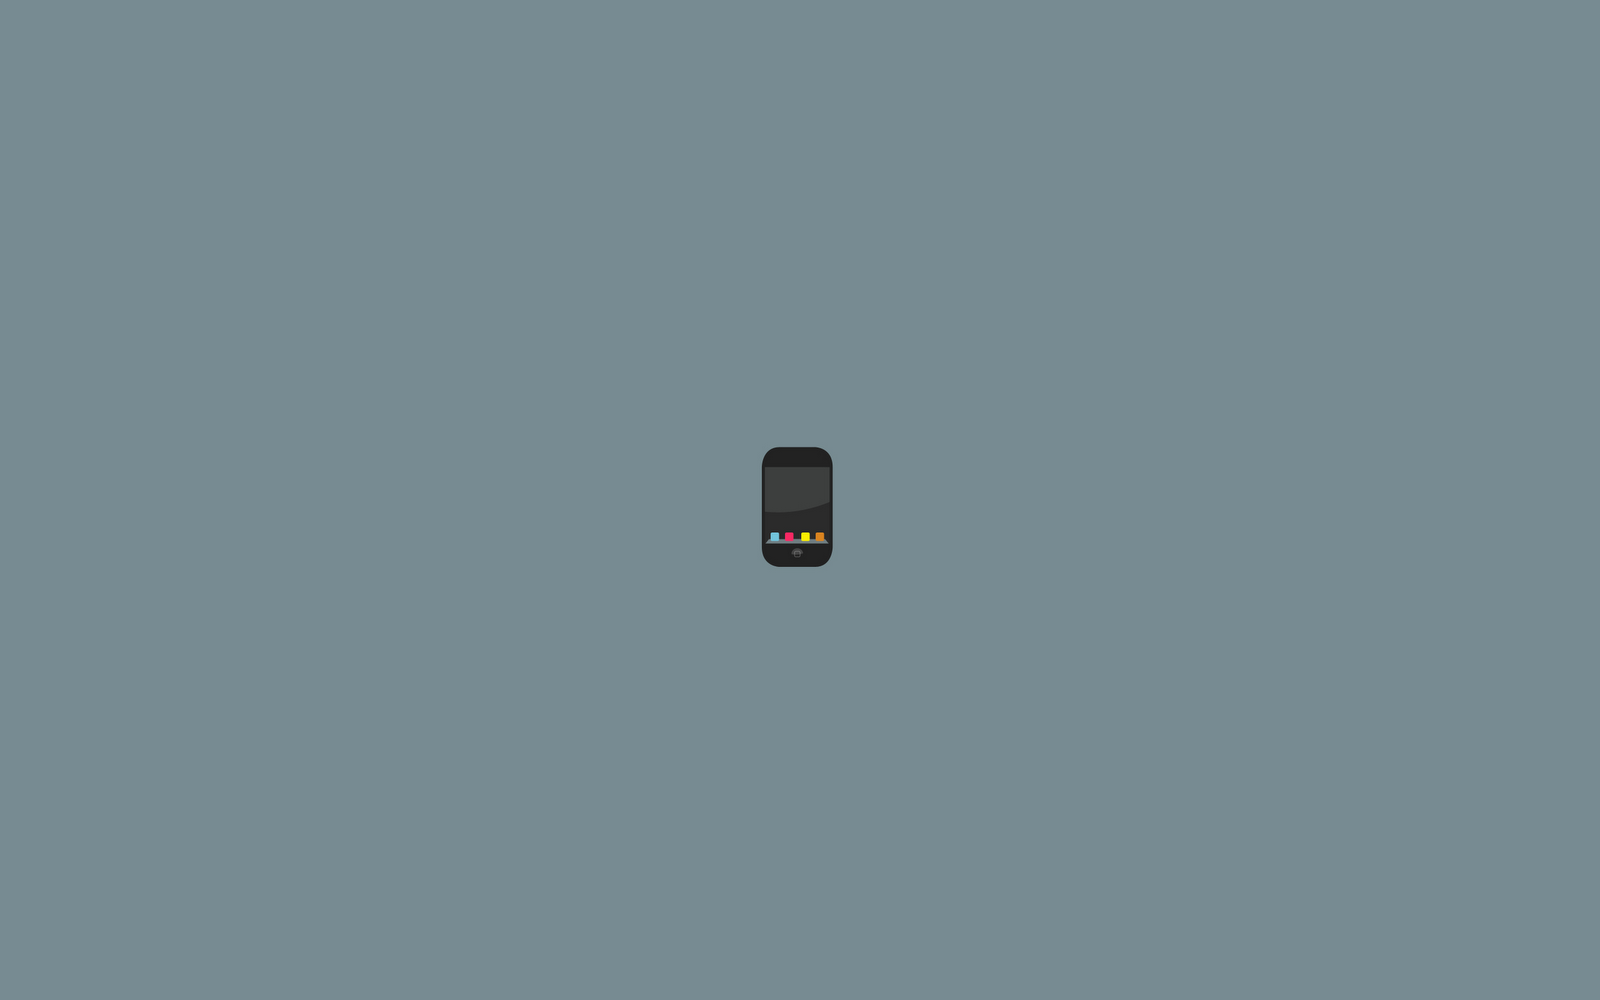 Pictures: Cool Minimalist Wallpapers HD   Amazing, Funny ...